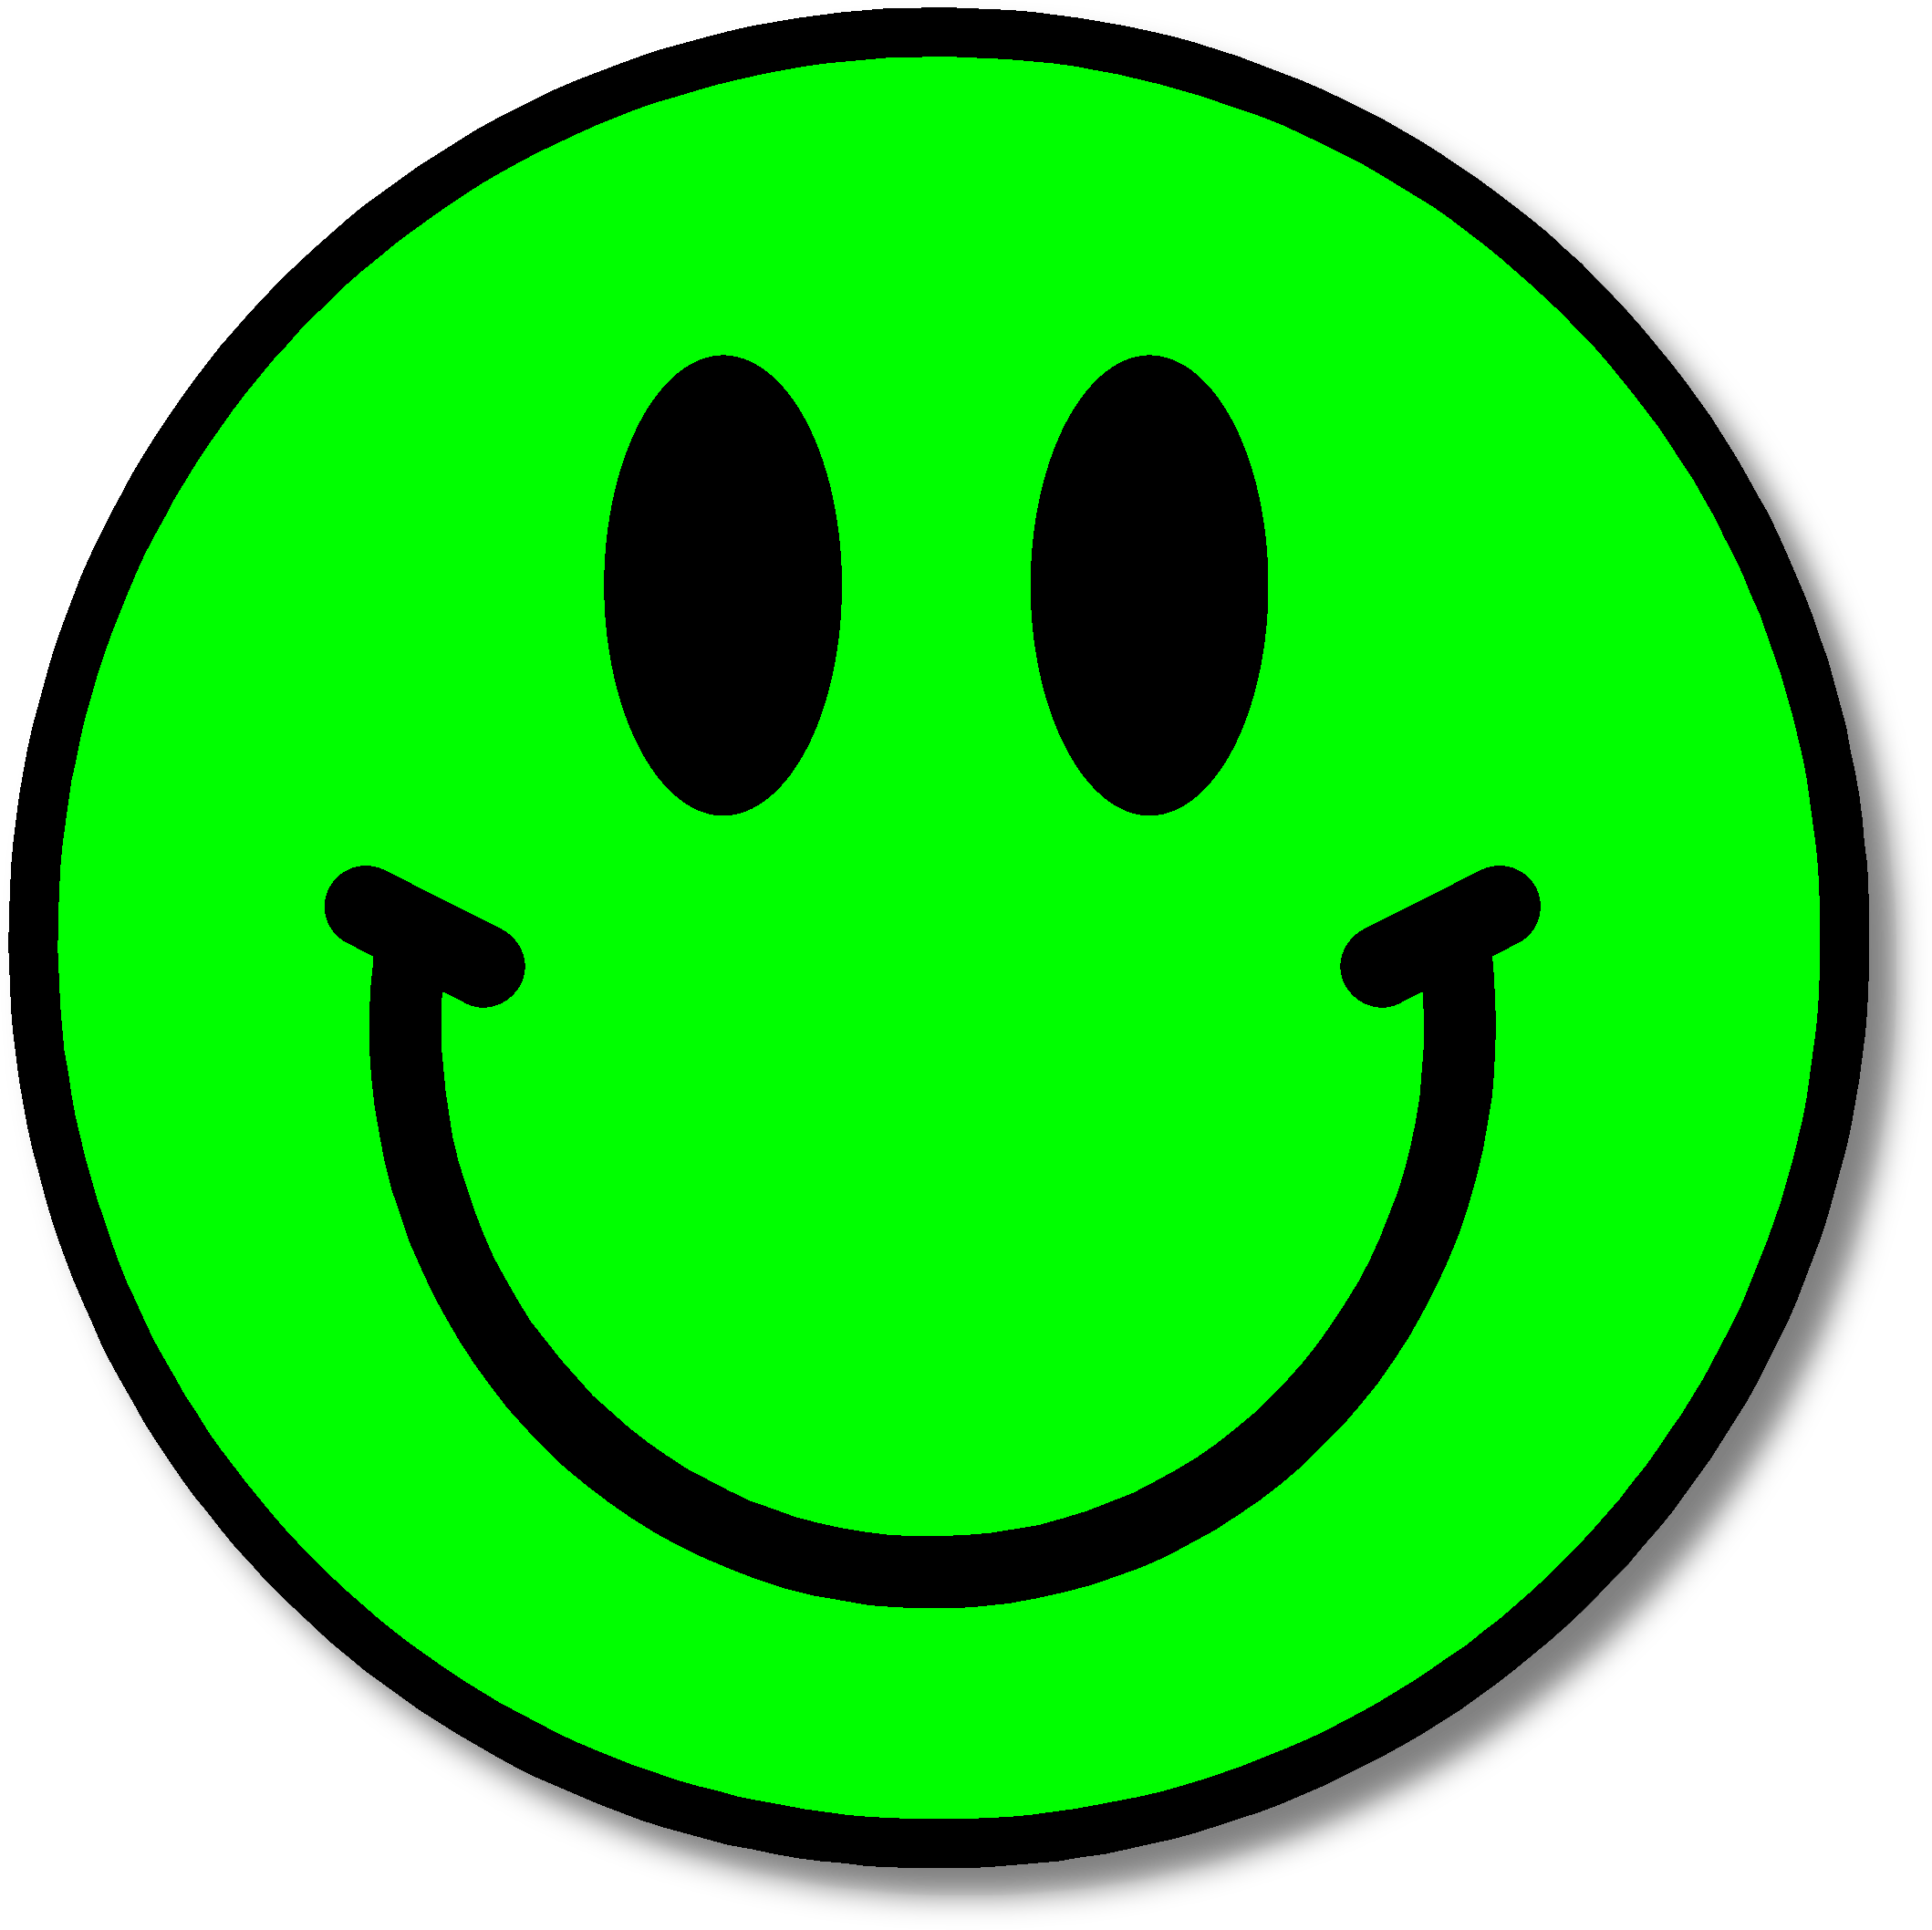 Smiley faces images